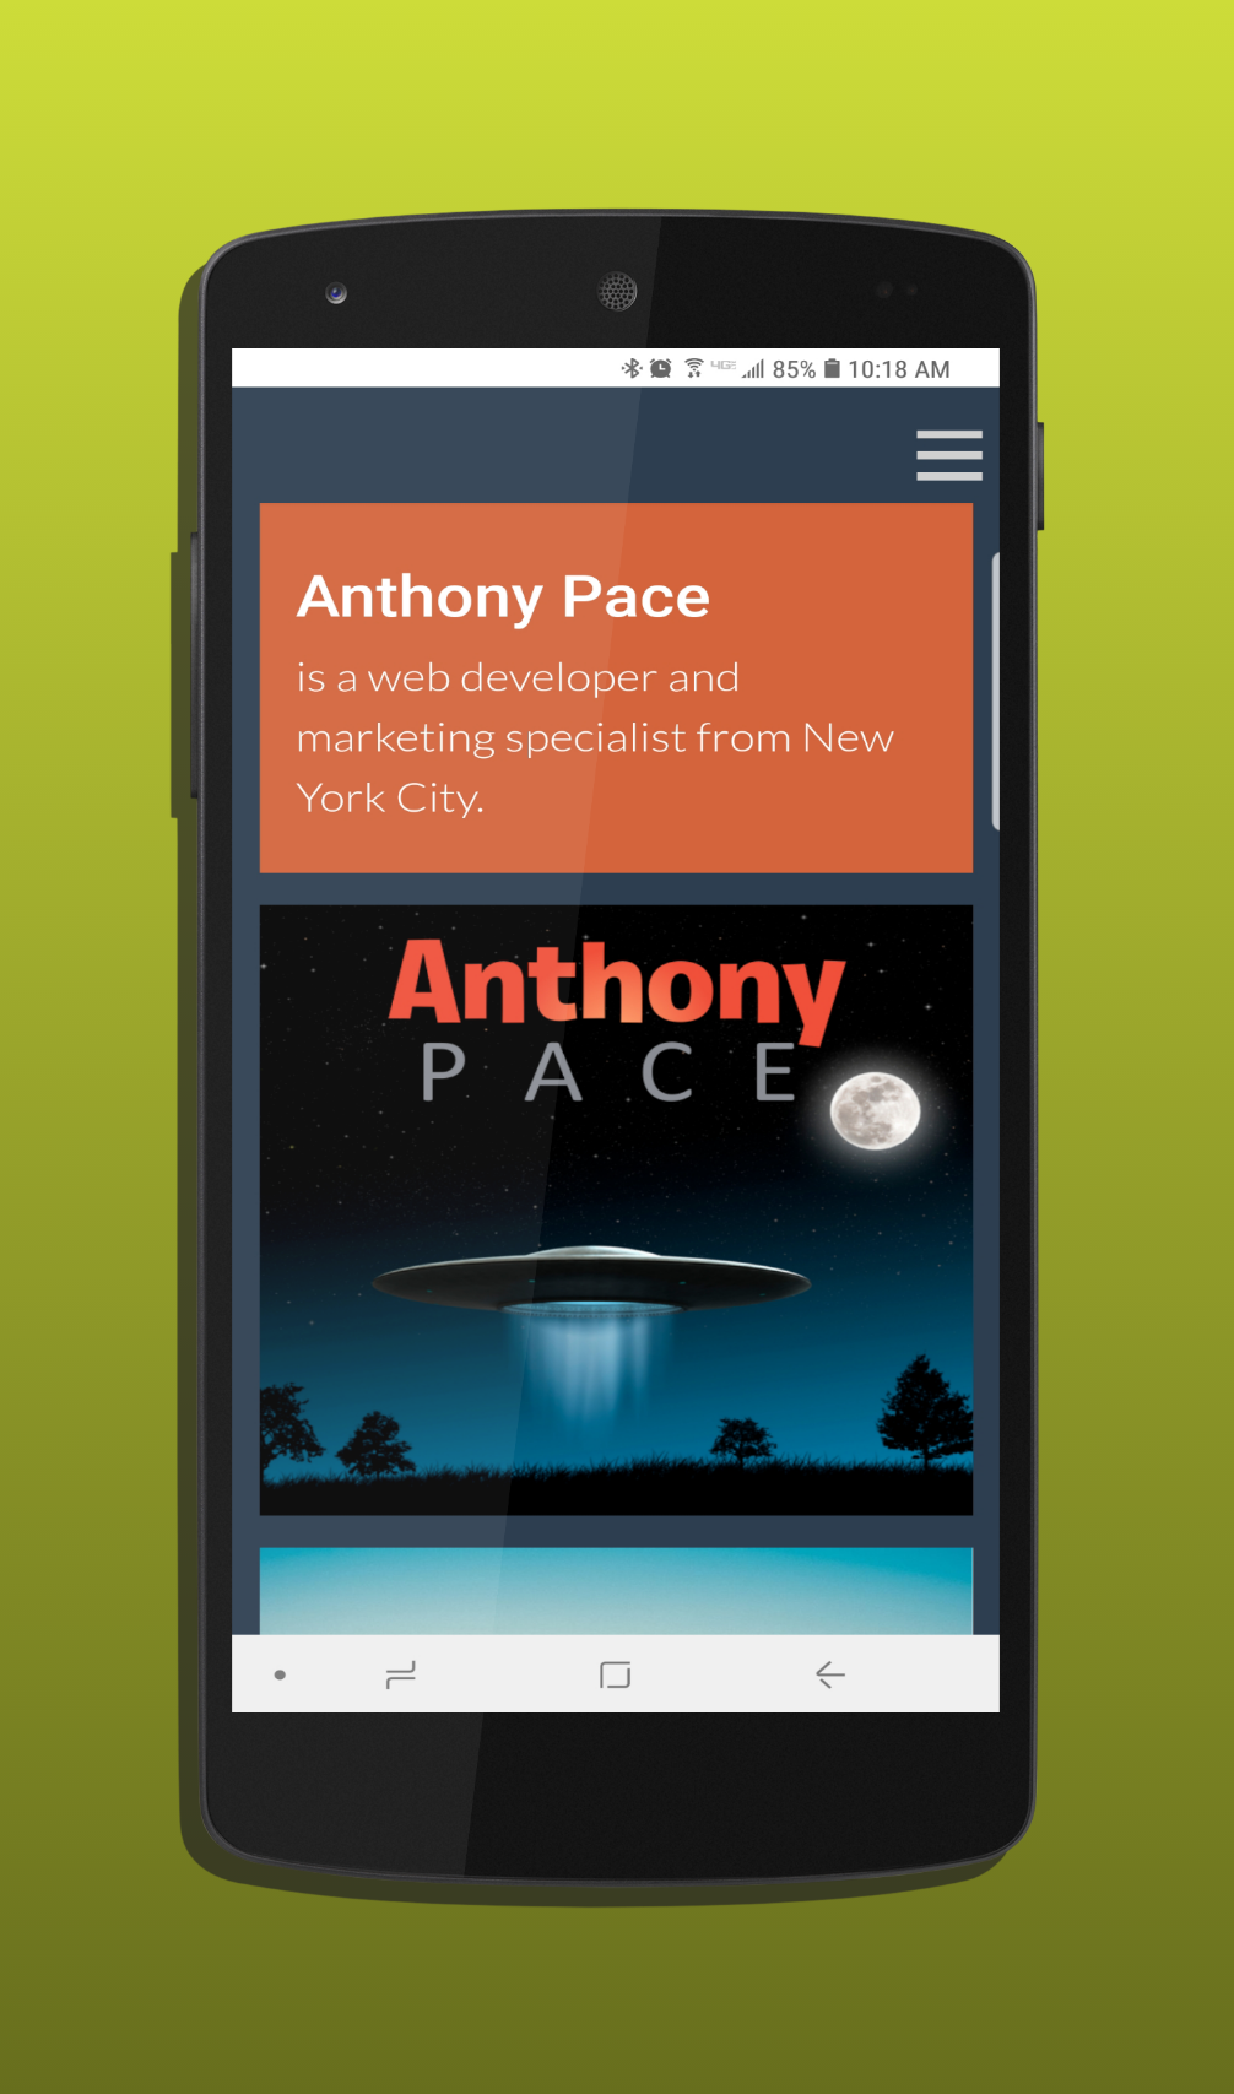 AntPace.com mobile device view